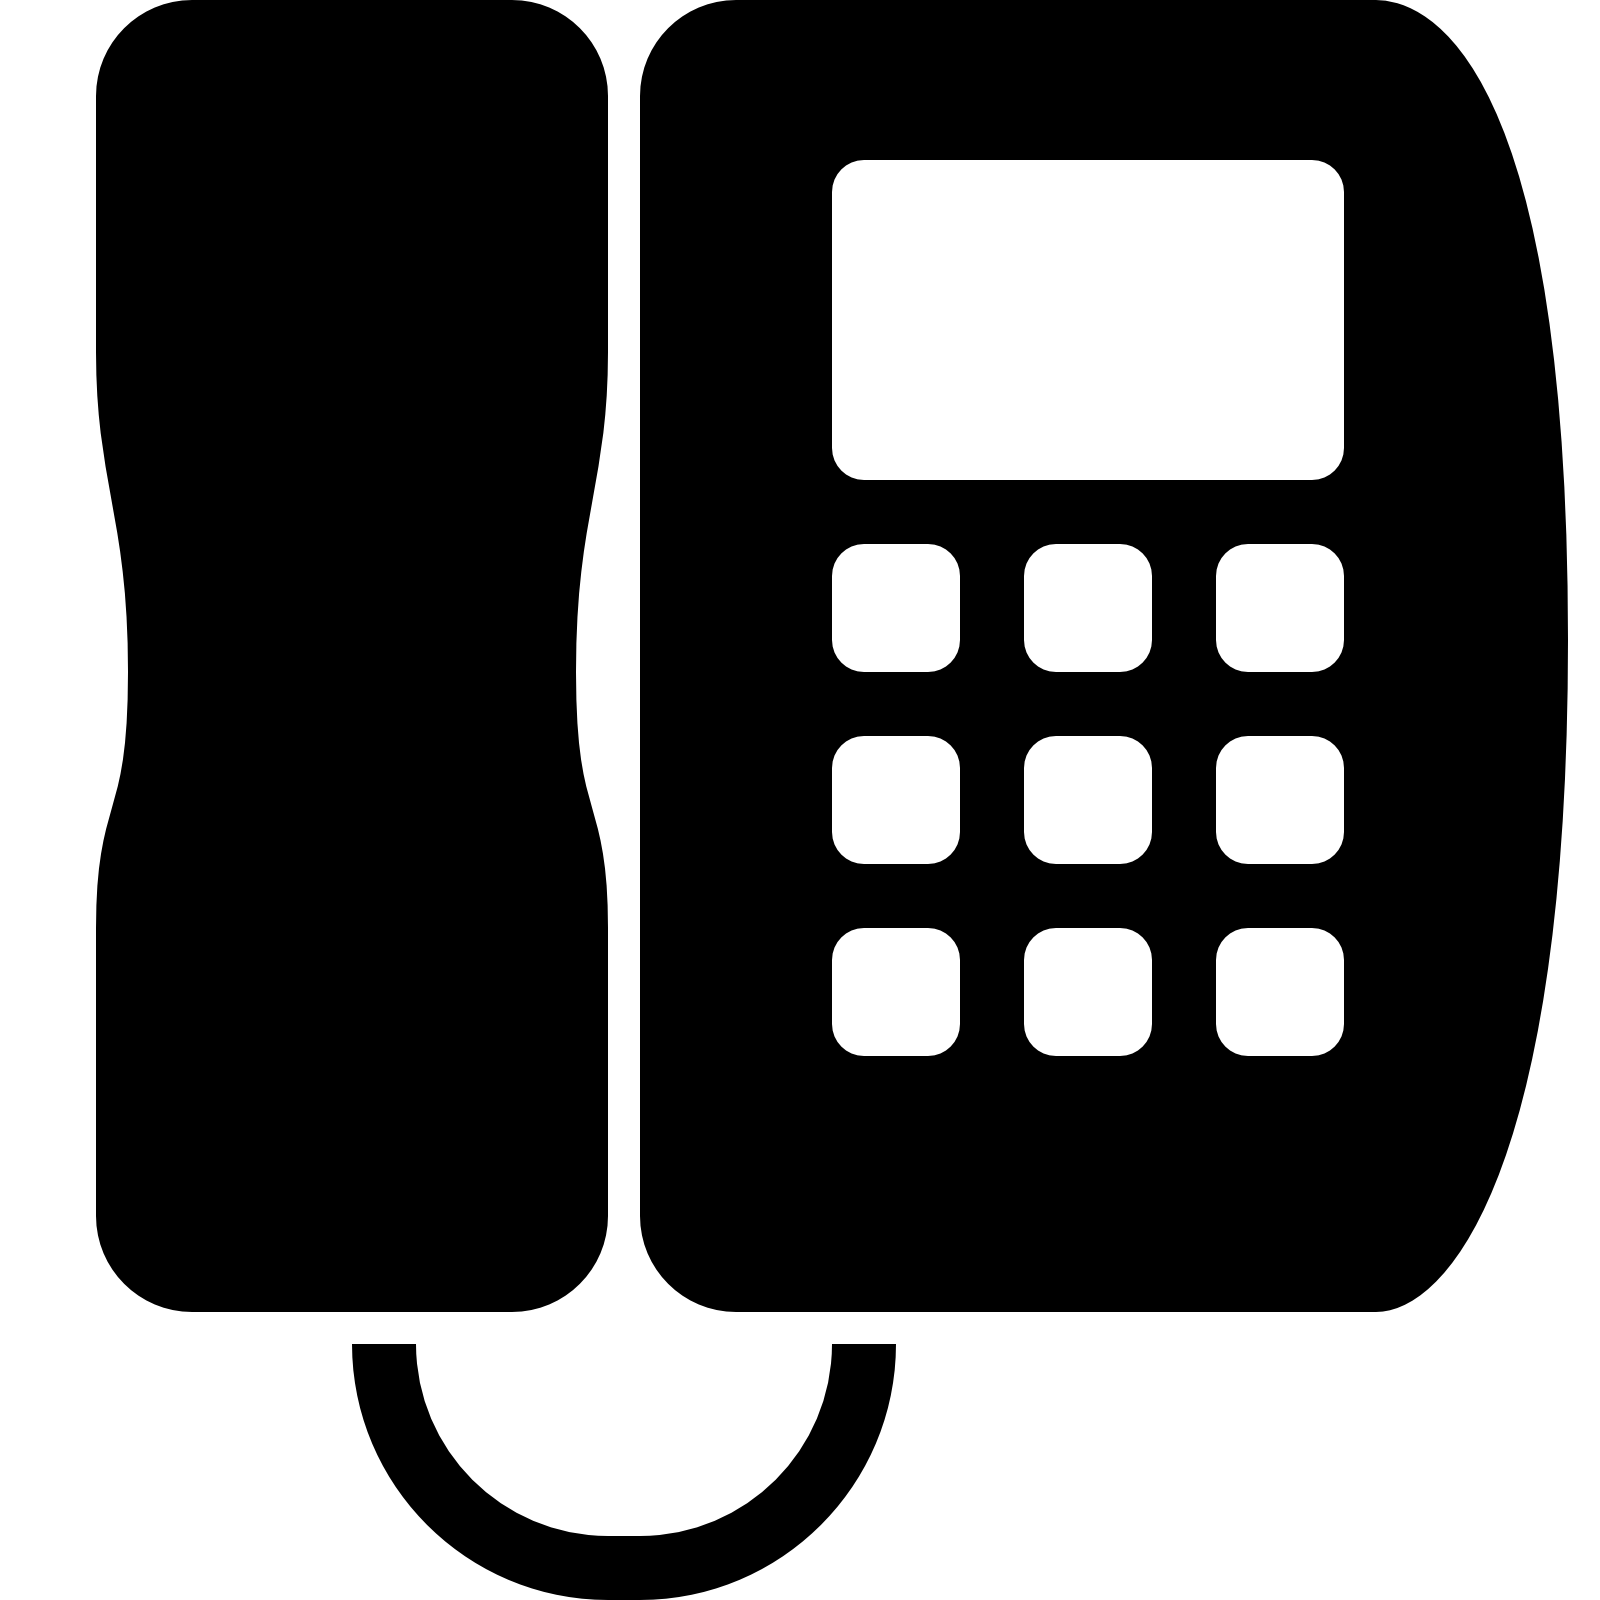 Partition contractor kl l. Telephone clipart office phone